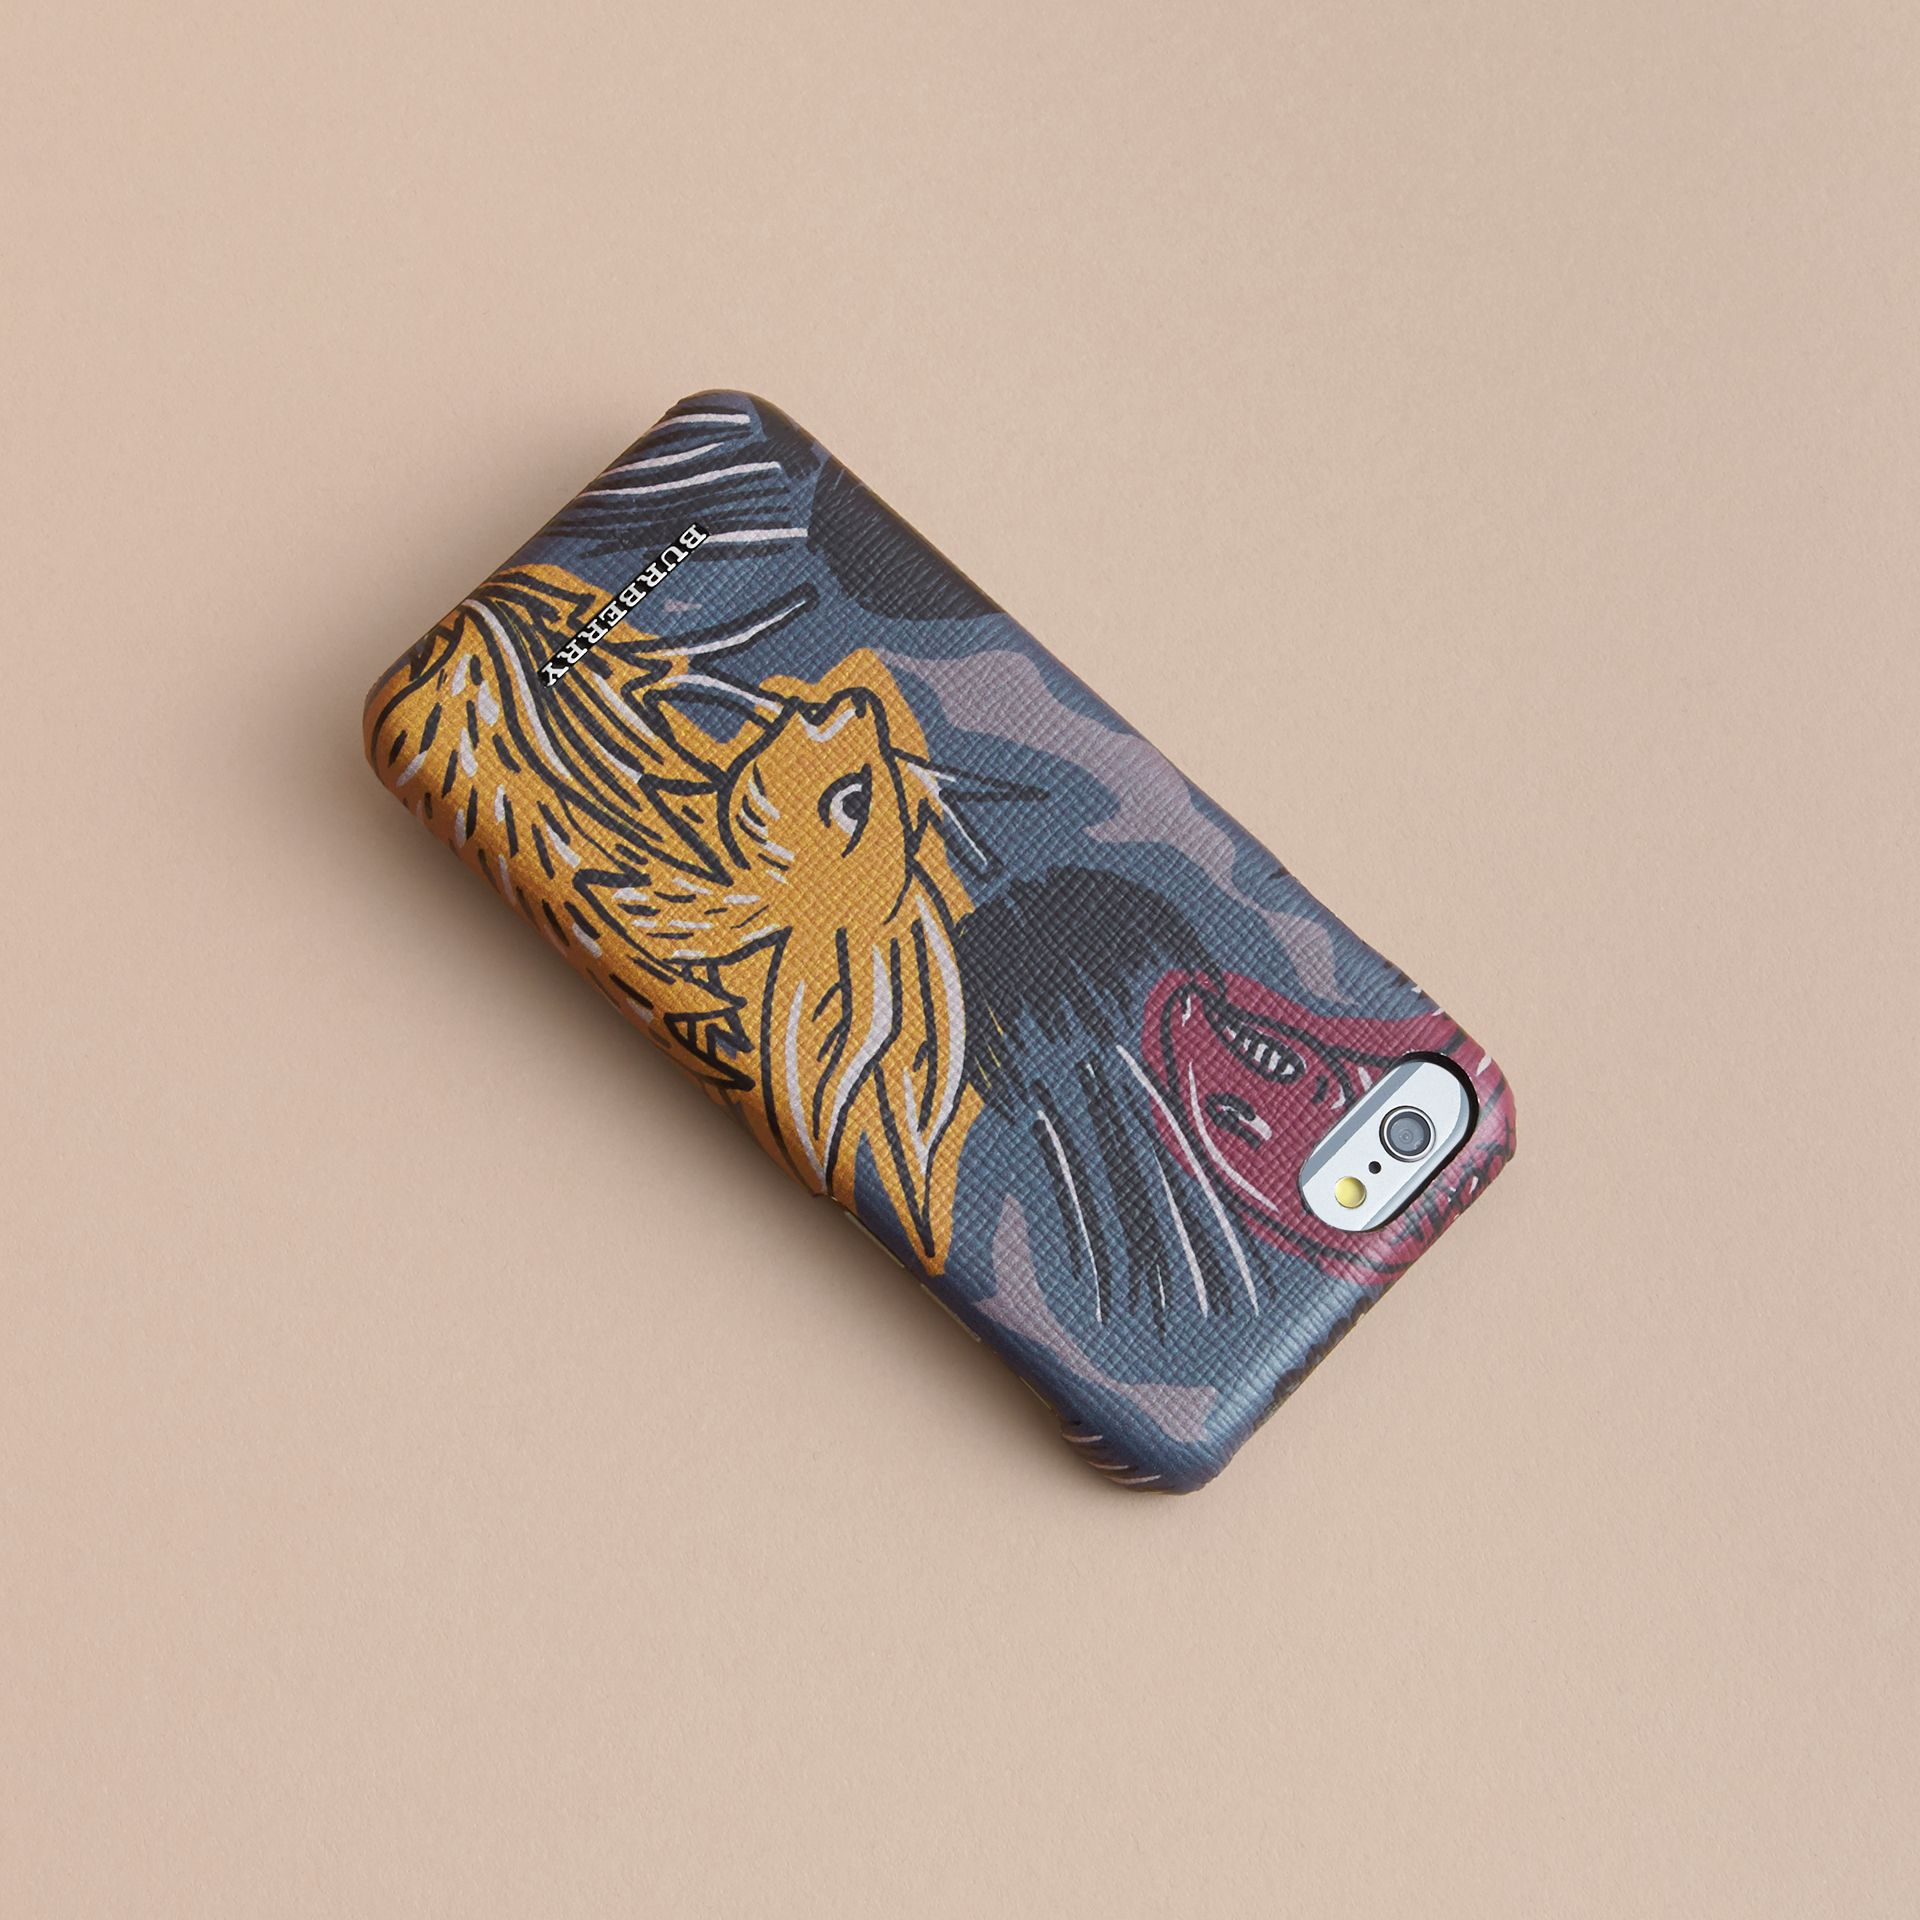 Beasts Print London Leather iPhone 7 Case in Navy Grey - Men | Burberry - gallery image 4